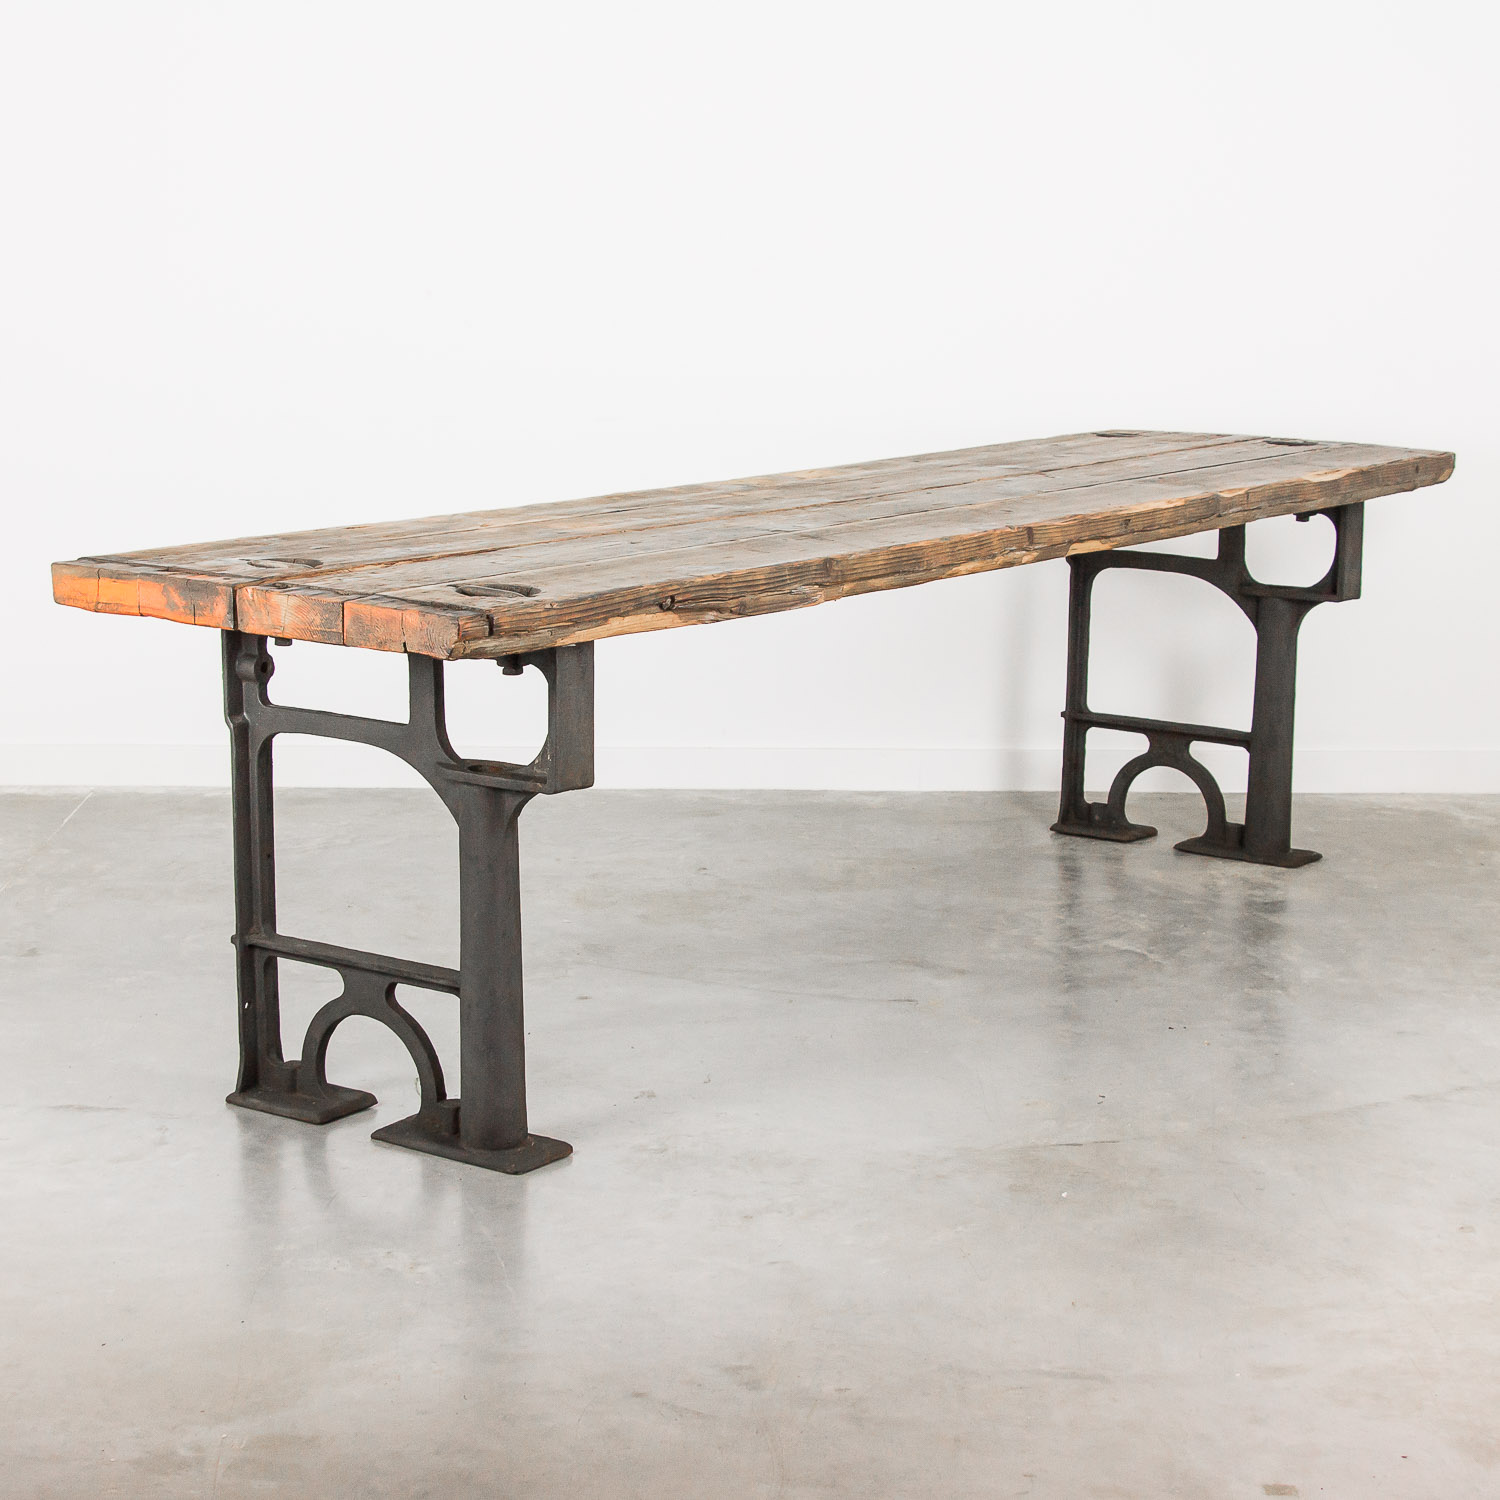 Big industrial table